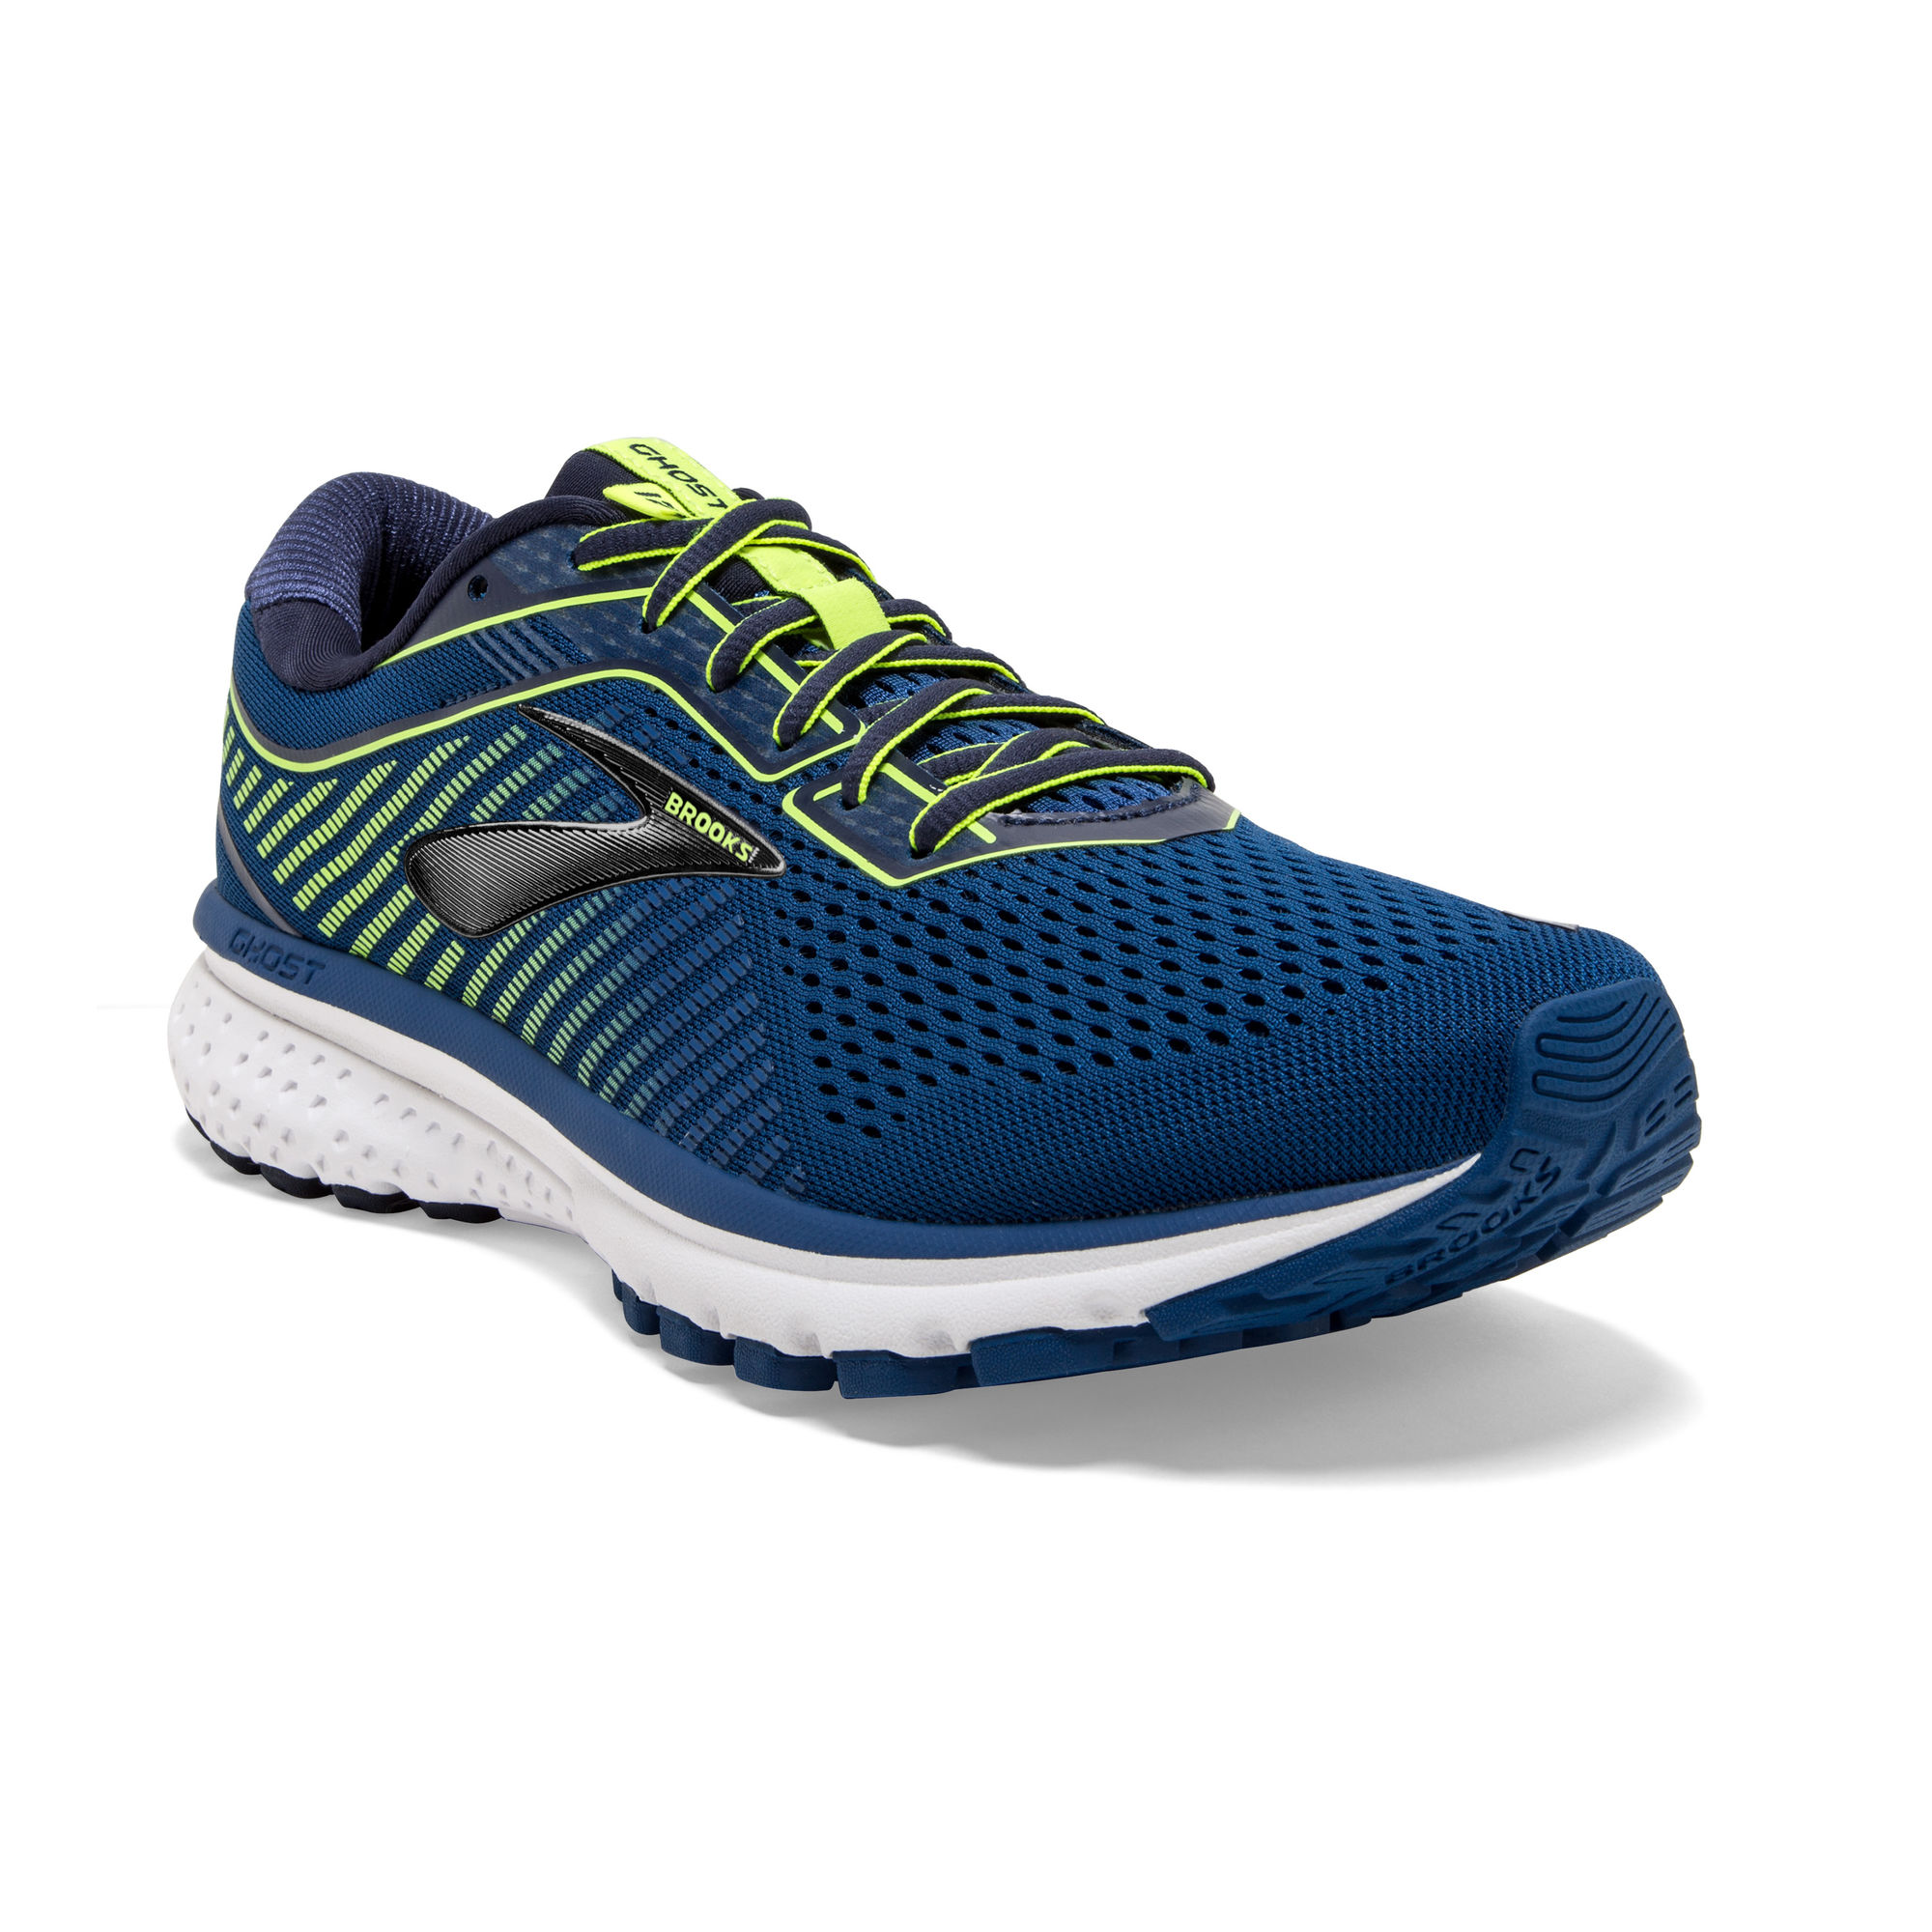 Brooks Ghost 12 in Blau Gelb